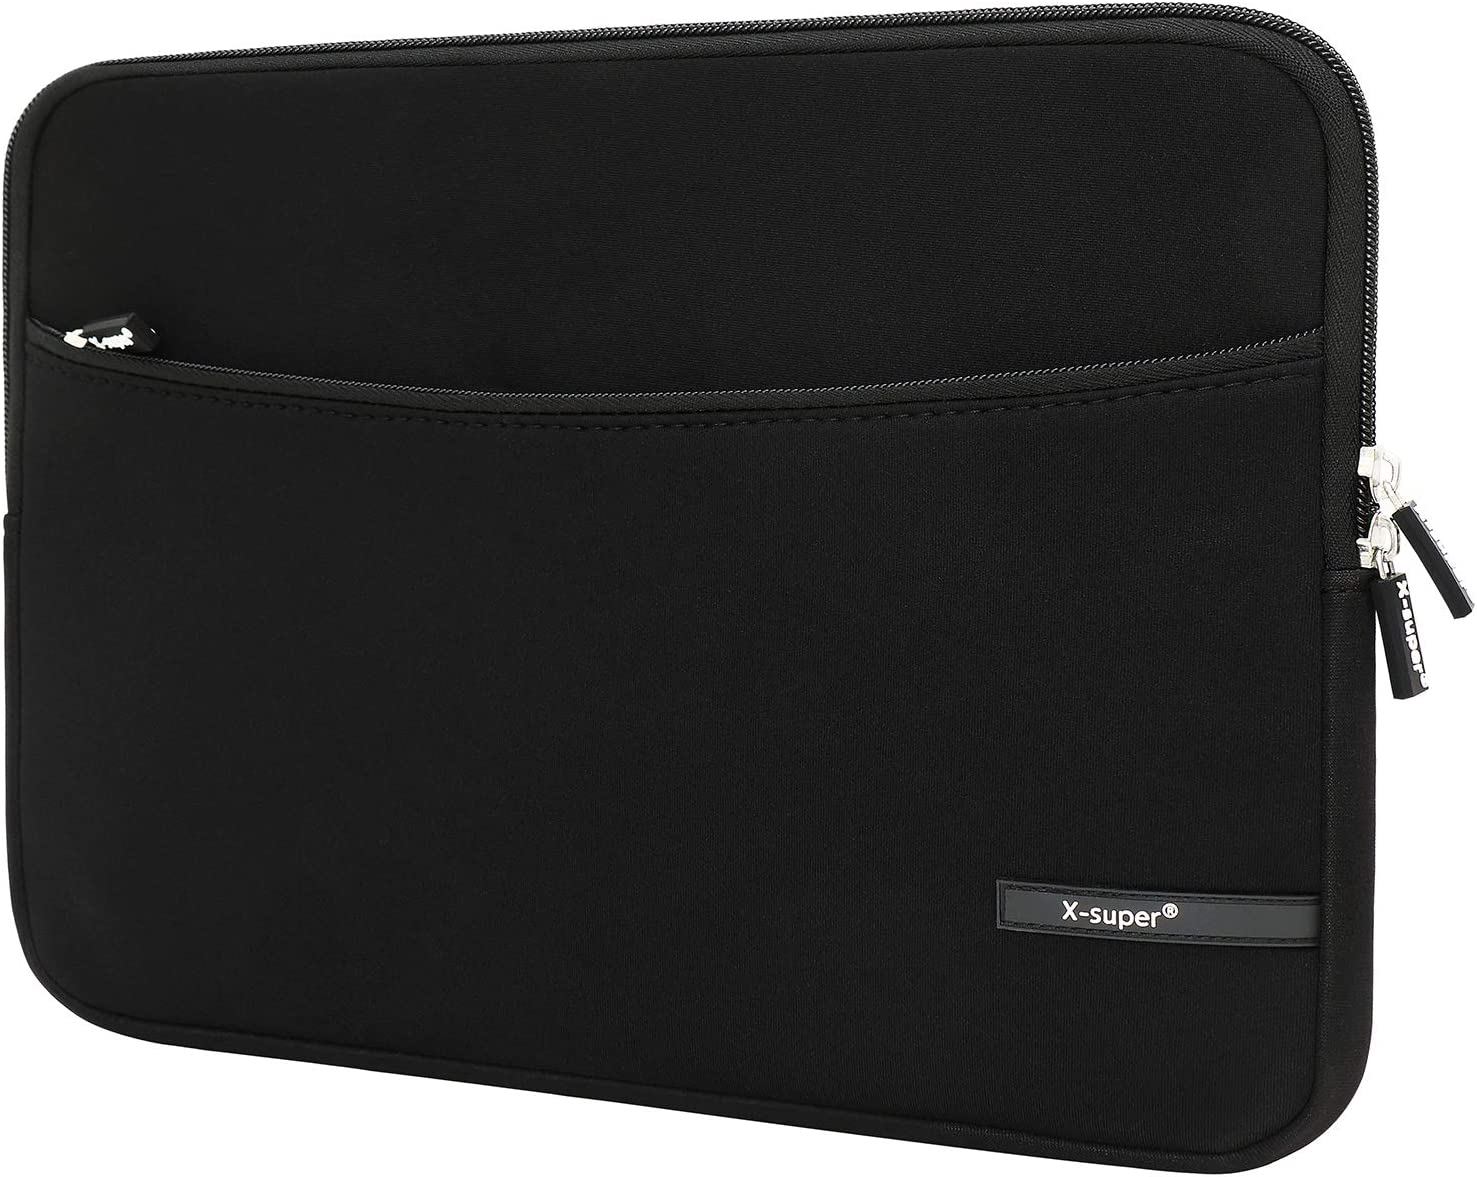 "X-super Neoprene sleeve Compatible 2018 New MacBook Air 13"" Retina A1932 